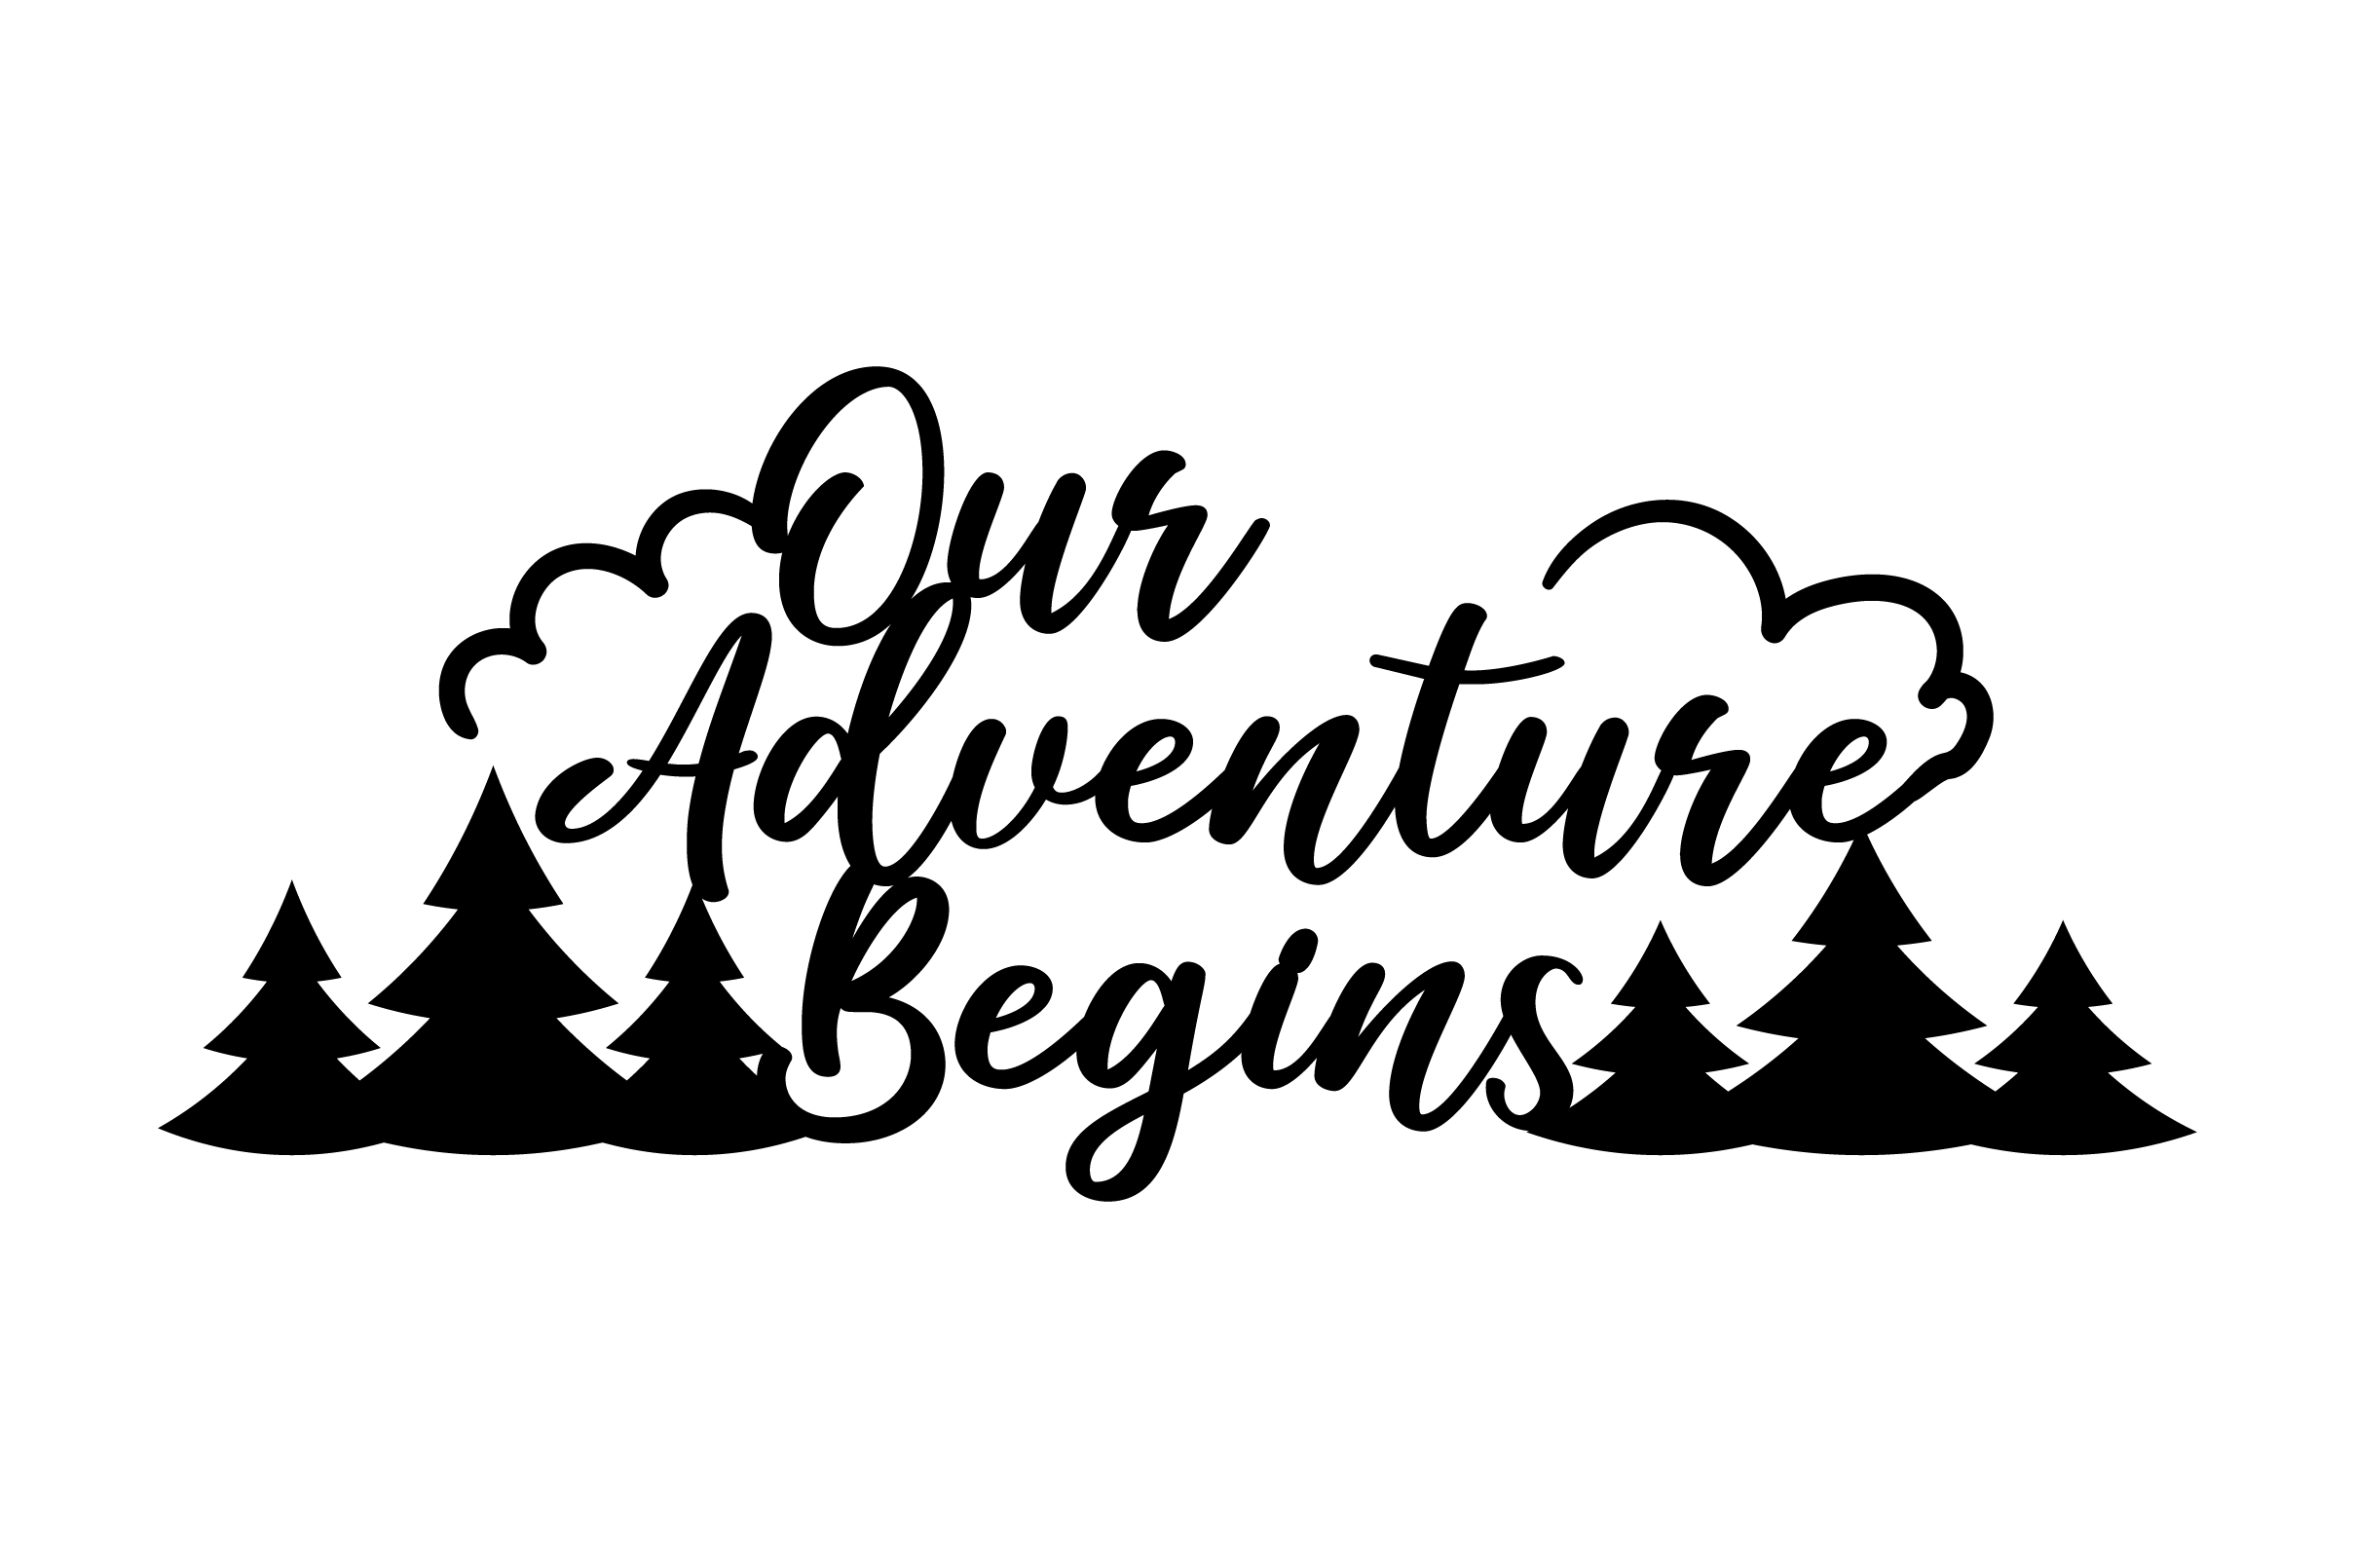 Download Free Our Adventure Begins Svg Cut File By Creative Fabrica Crafts for Cricut Explore, Silhouette and other cutting machines.